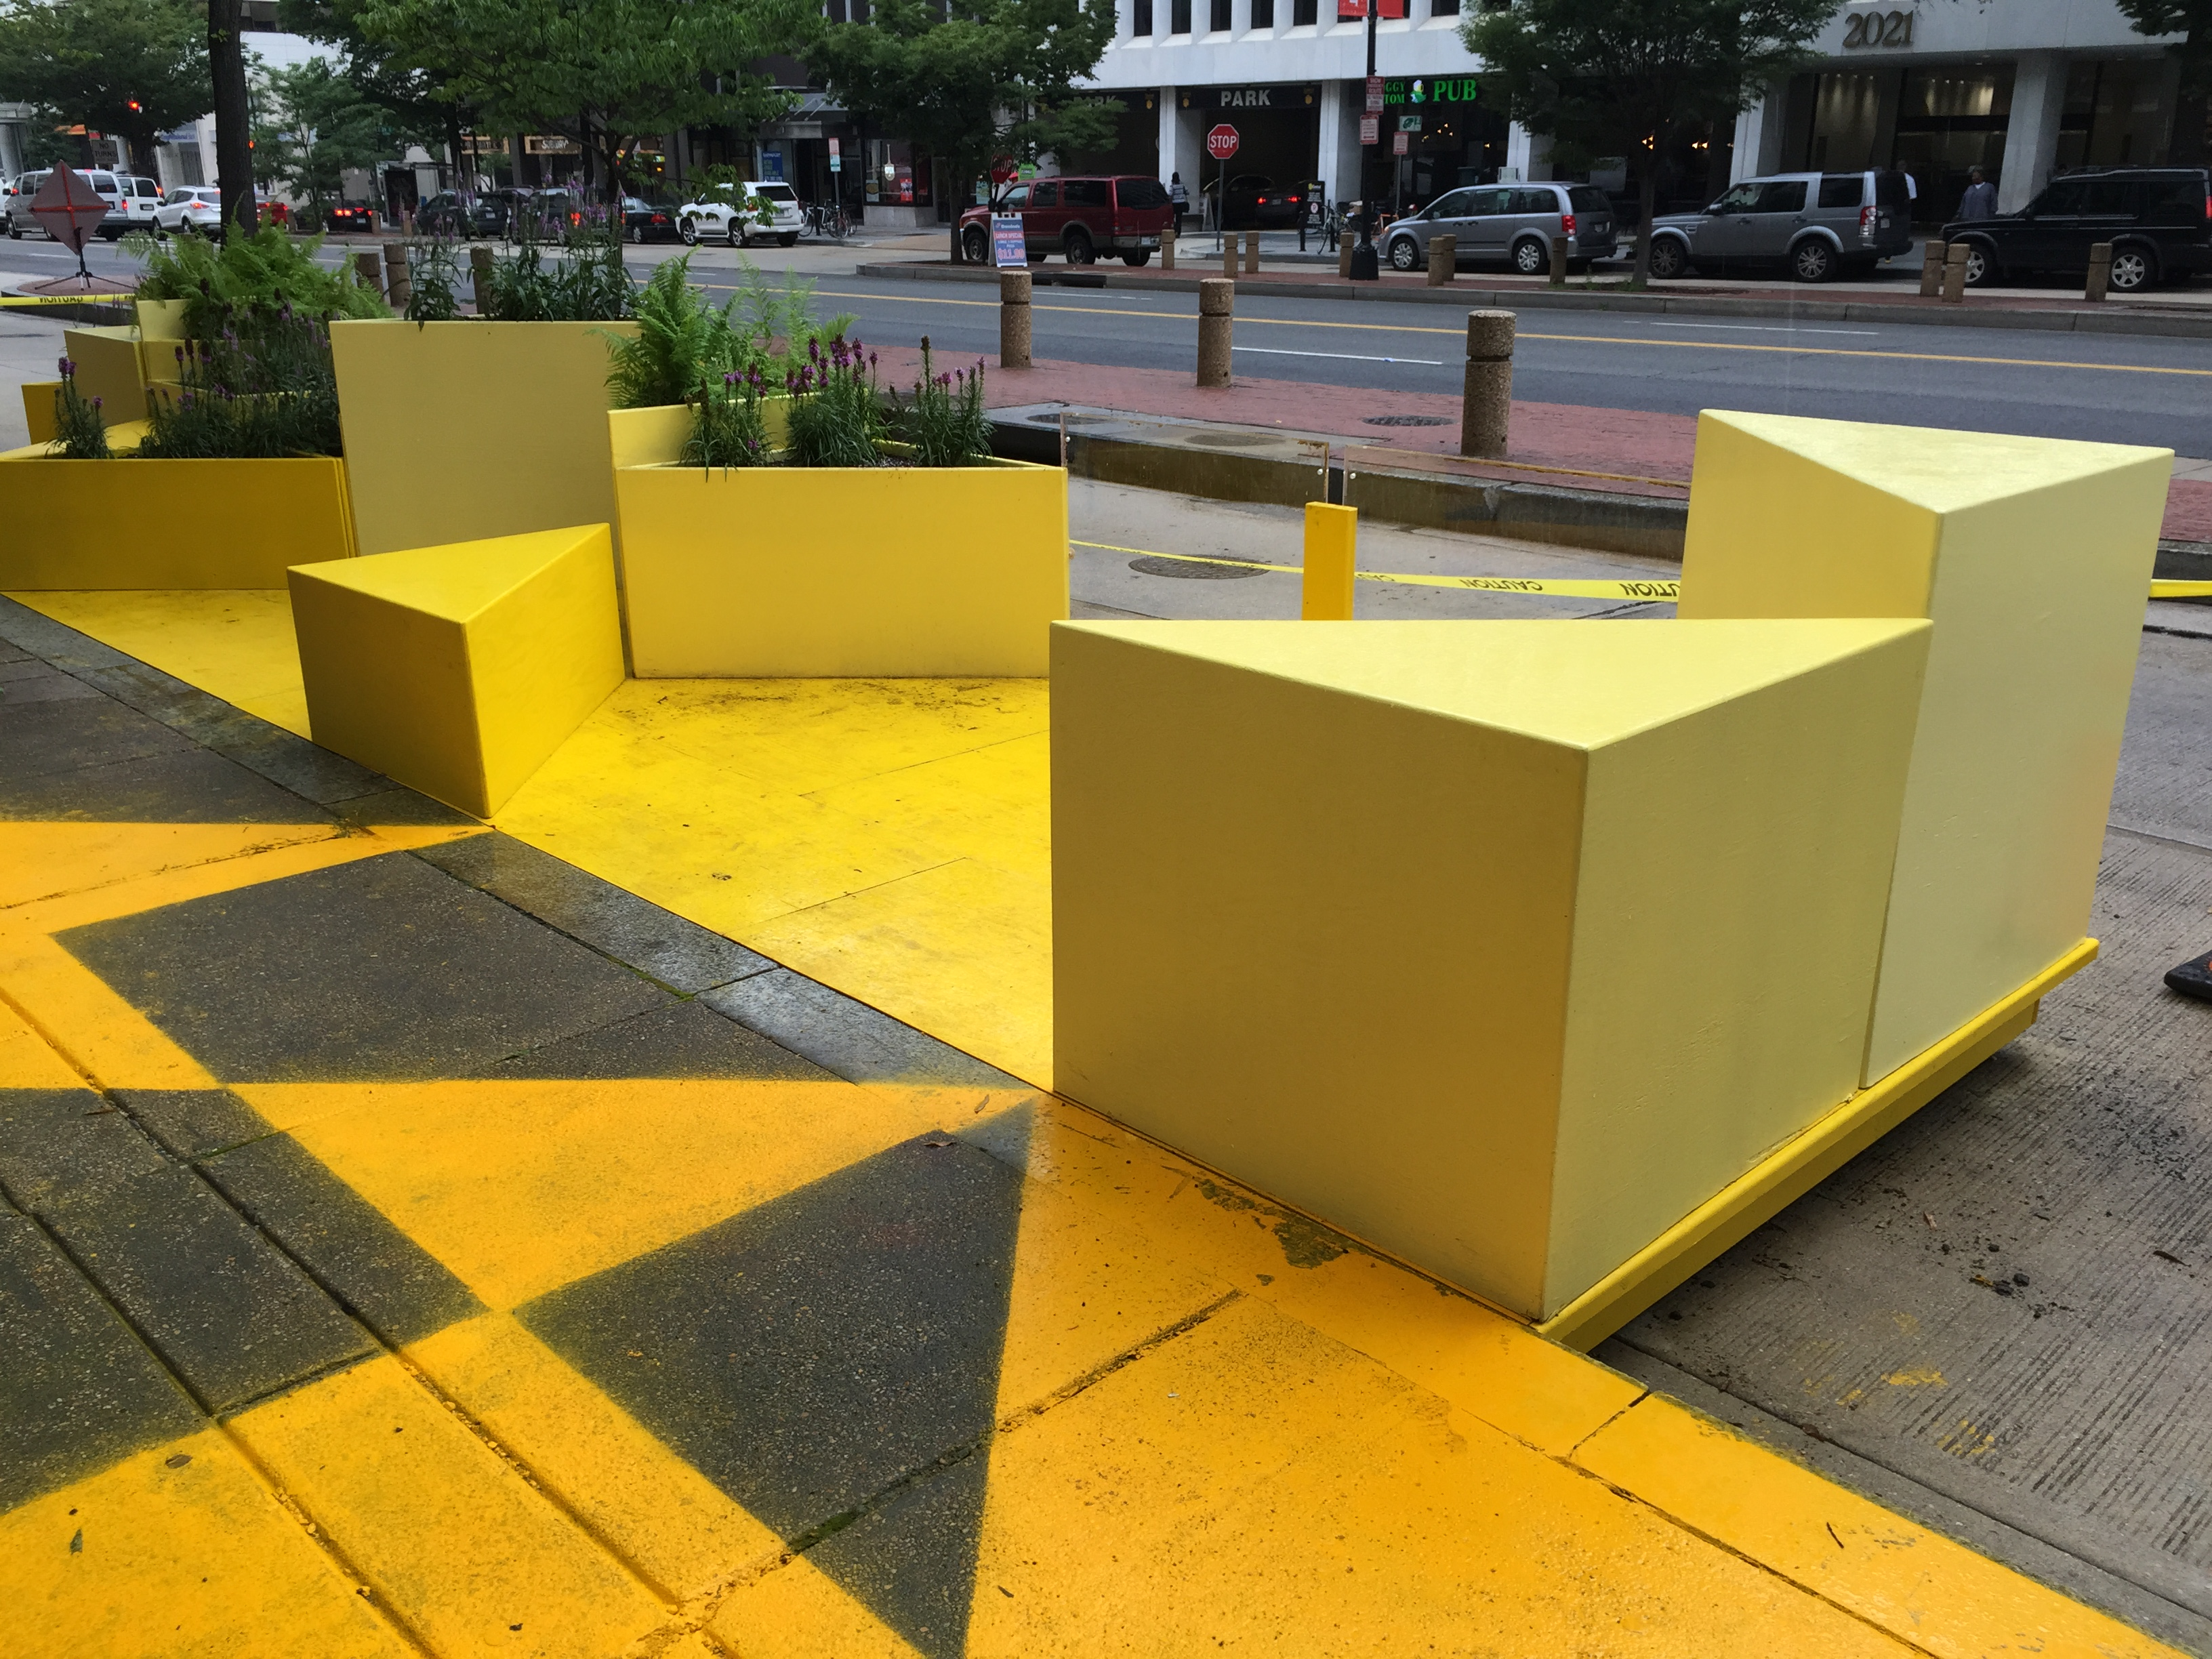 Mini park occupies parking spots in D.C. neighborhood